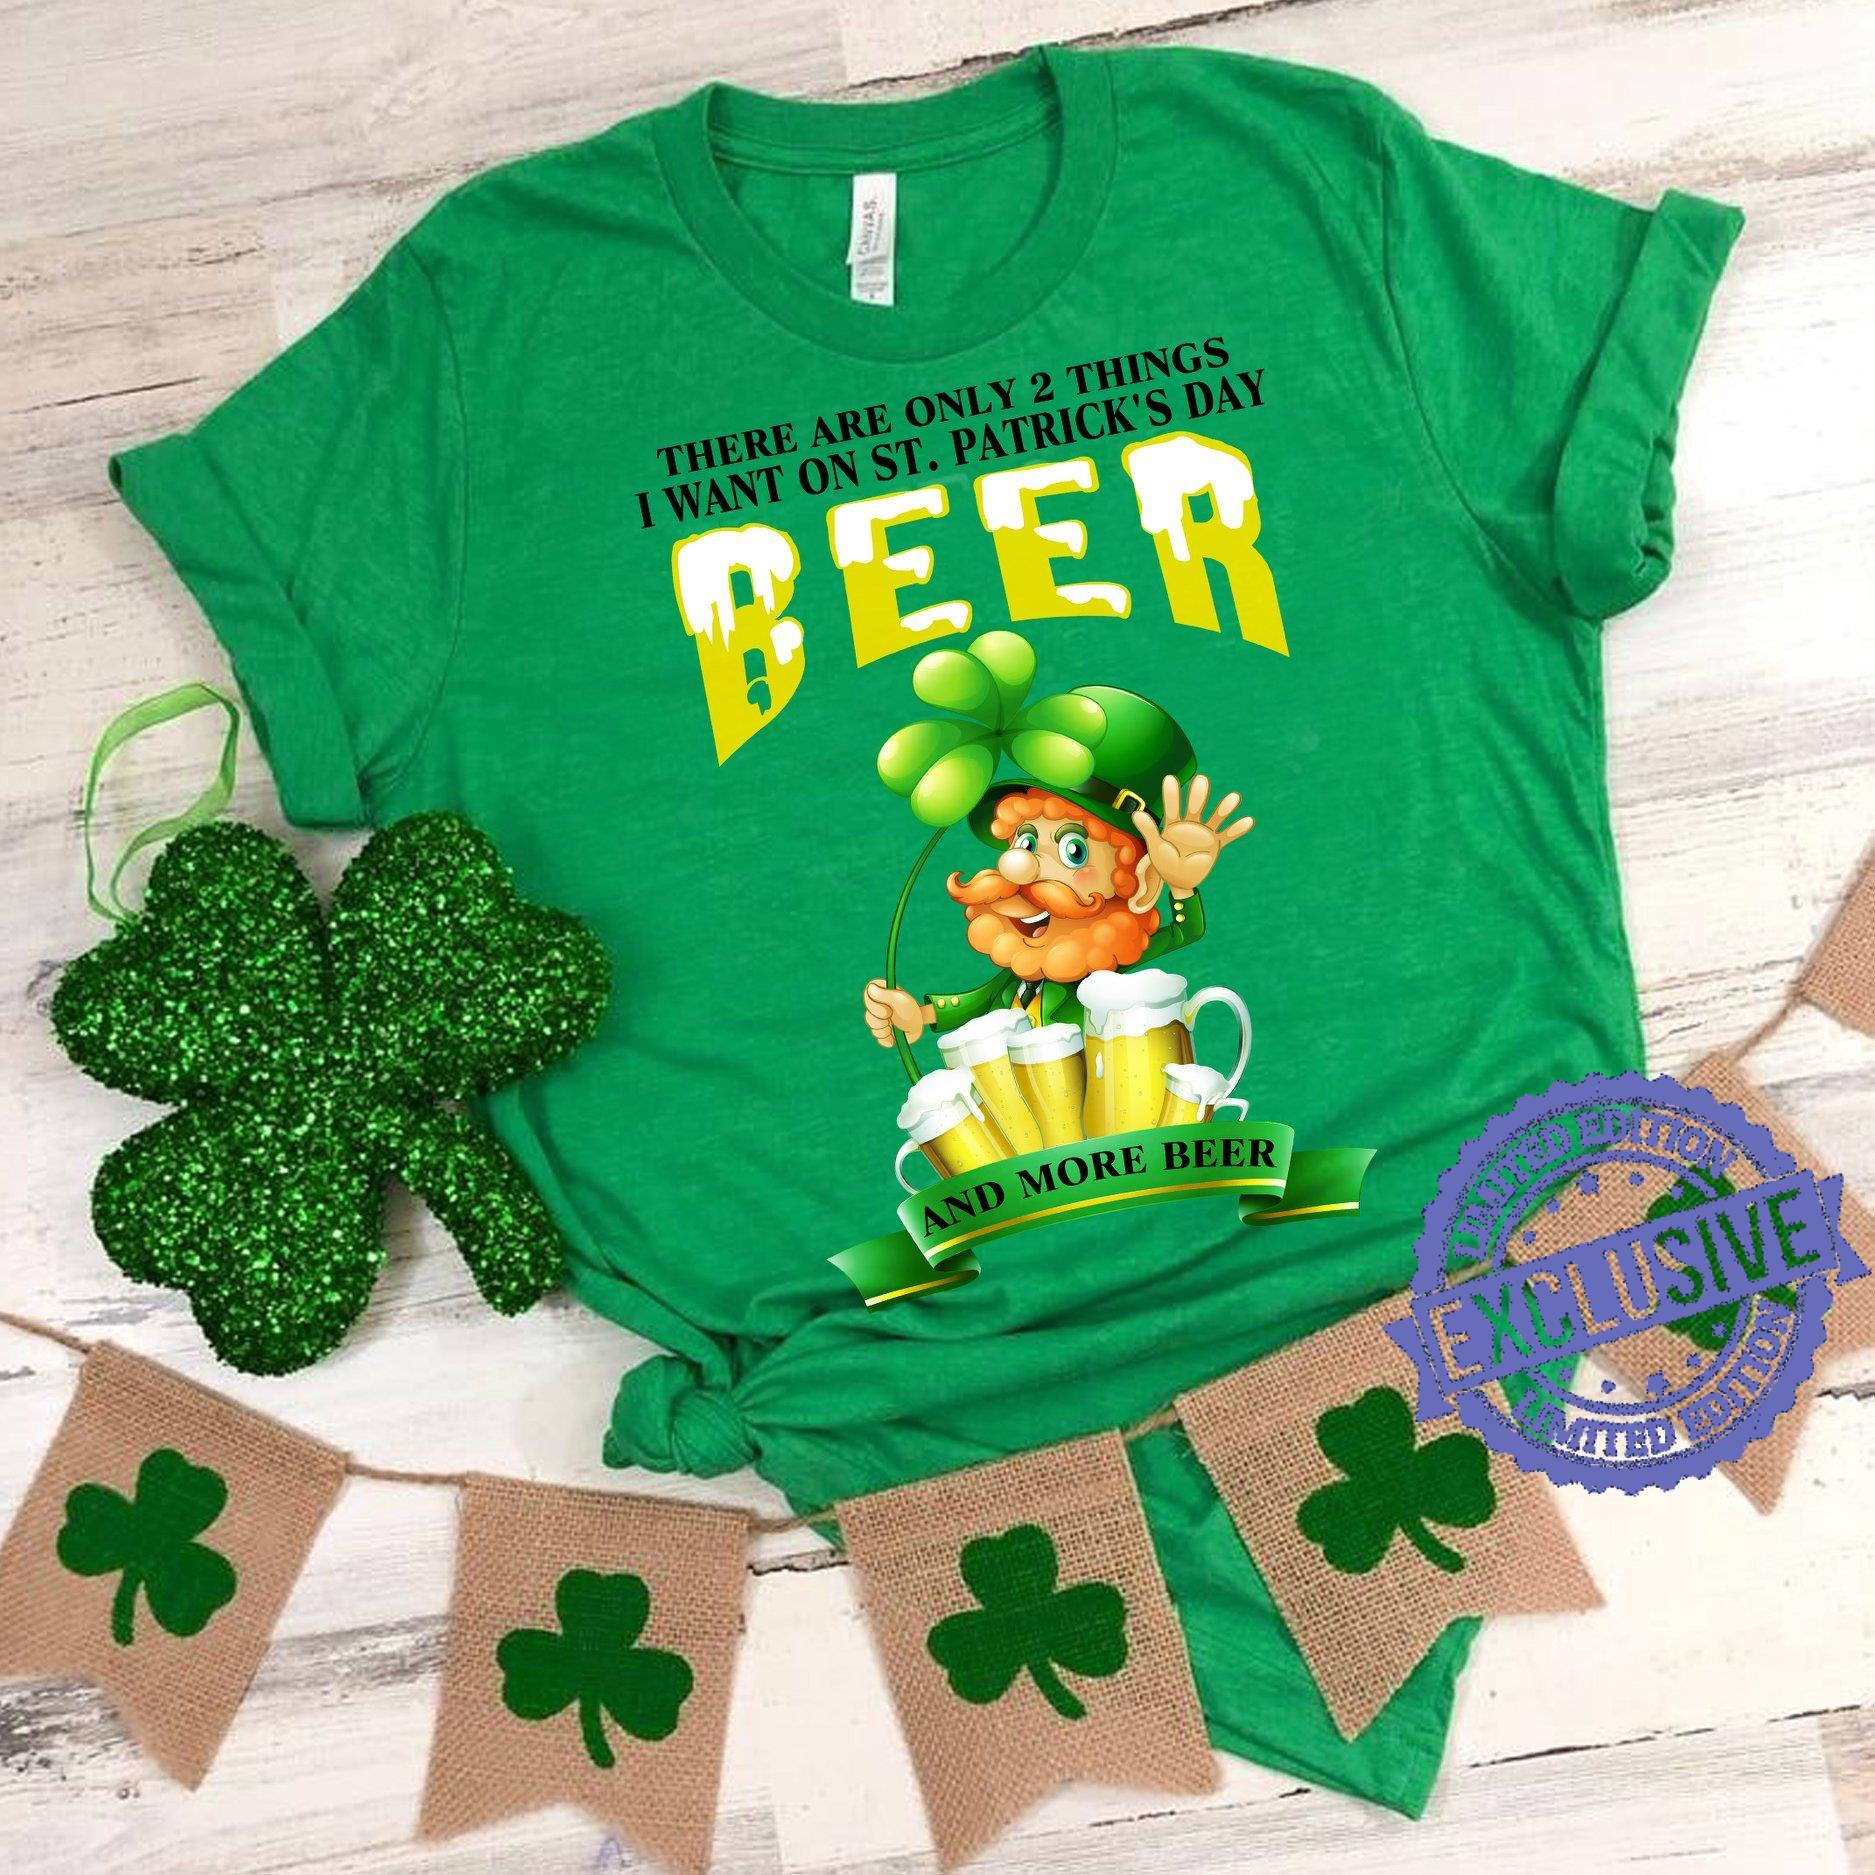 There are only 2 things i want on st patrick's day beer and more beer shirt